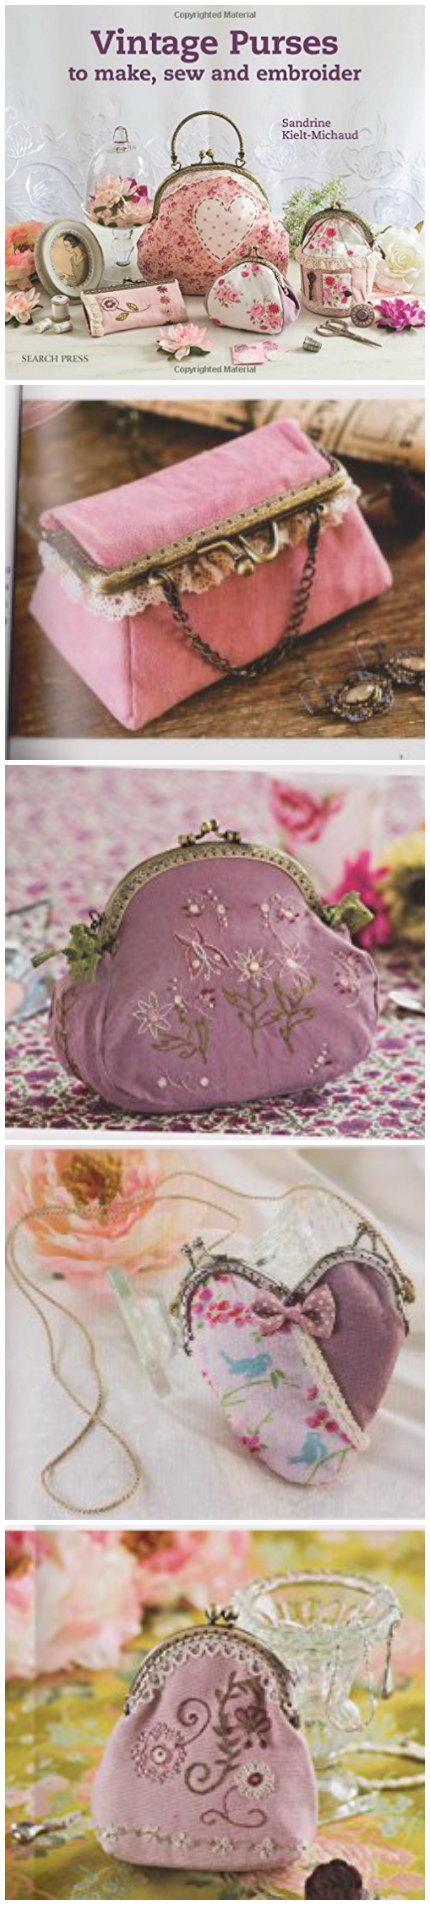 Ideas, patterns and inspiration for how to sew vintage style purses and bags. Sewing book.